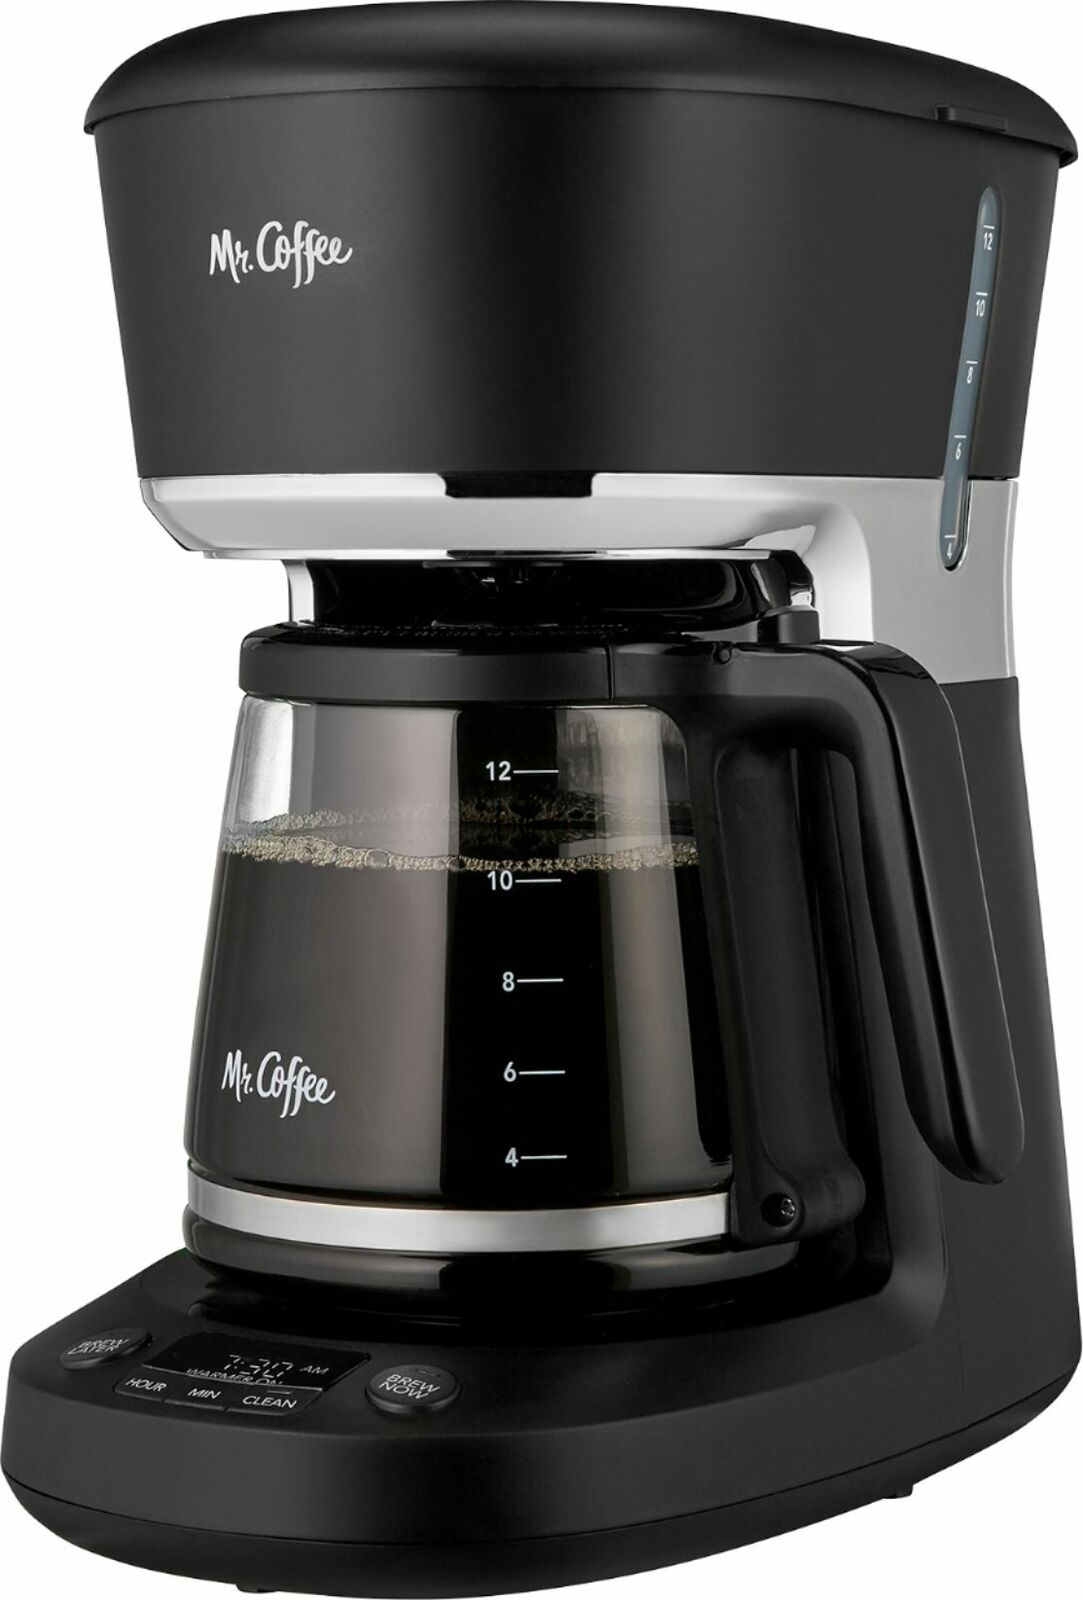 Mr. Coffee - 12-Cup Coffee Maker with Dishwashable Design - Black/Chrome